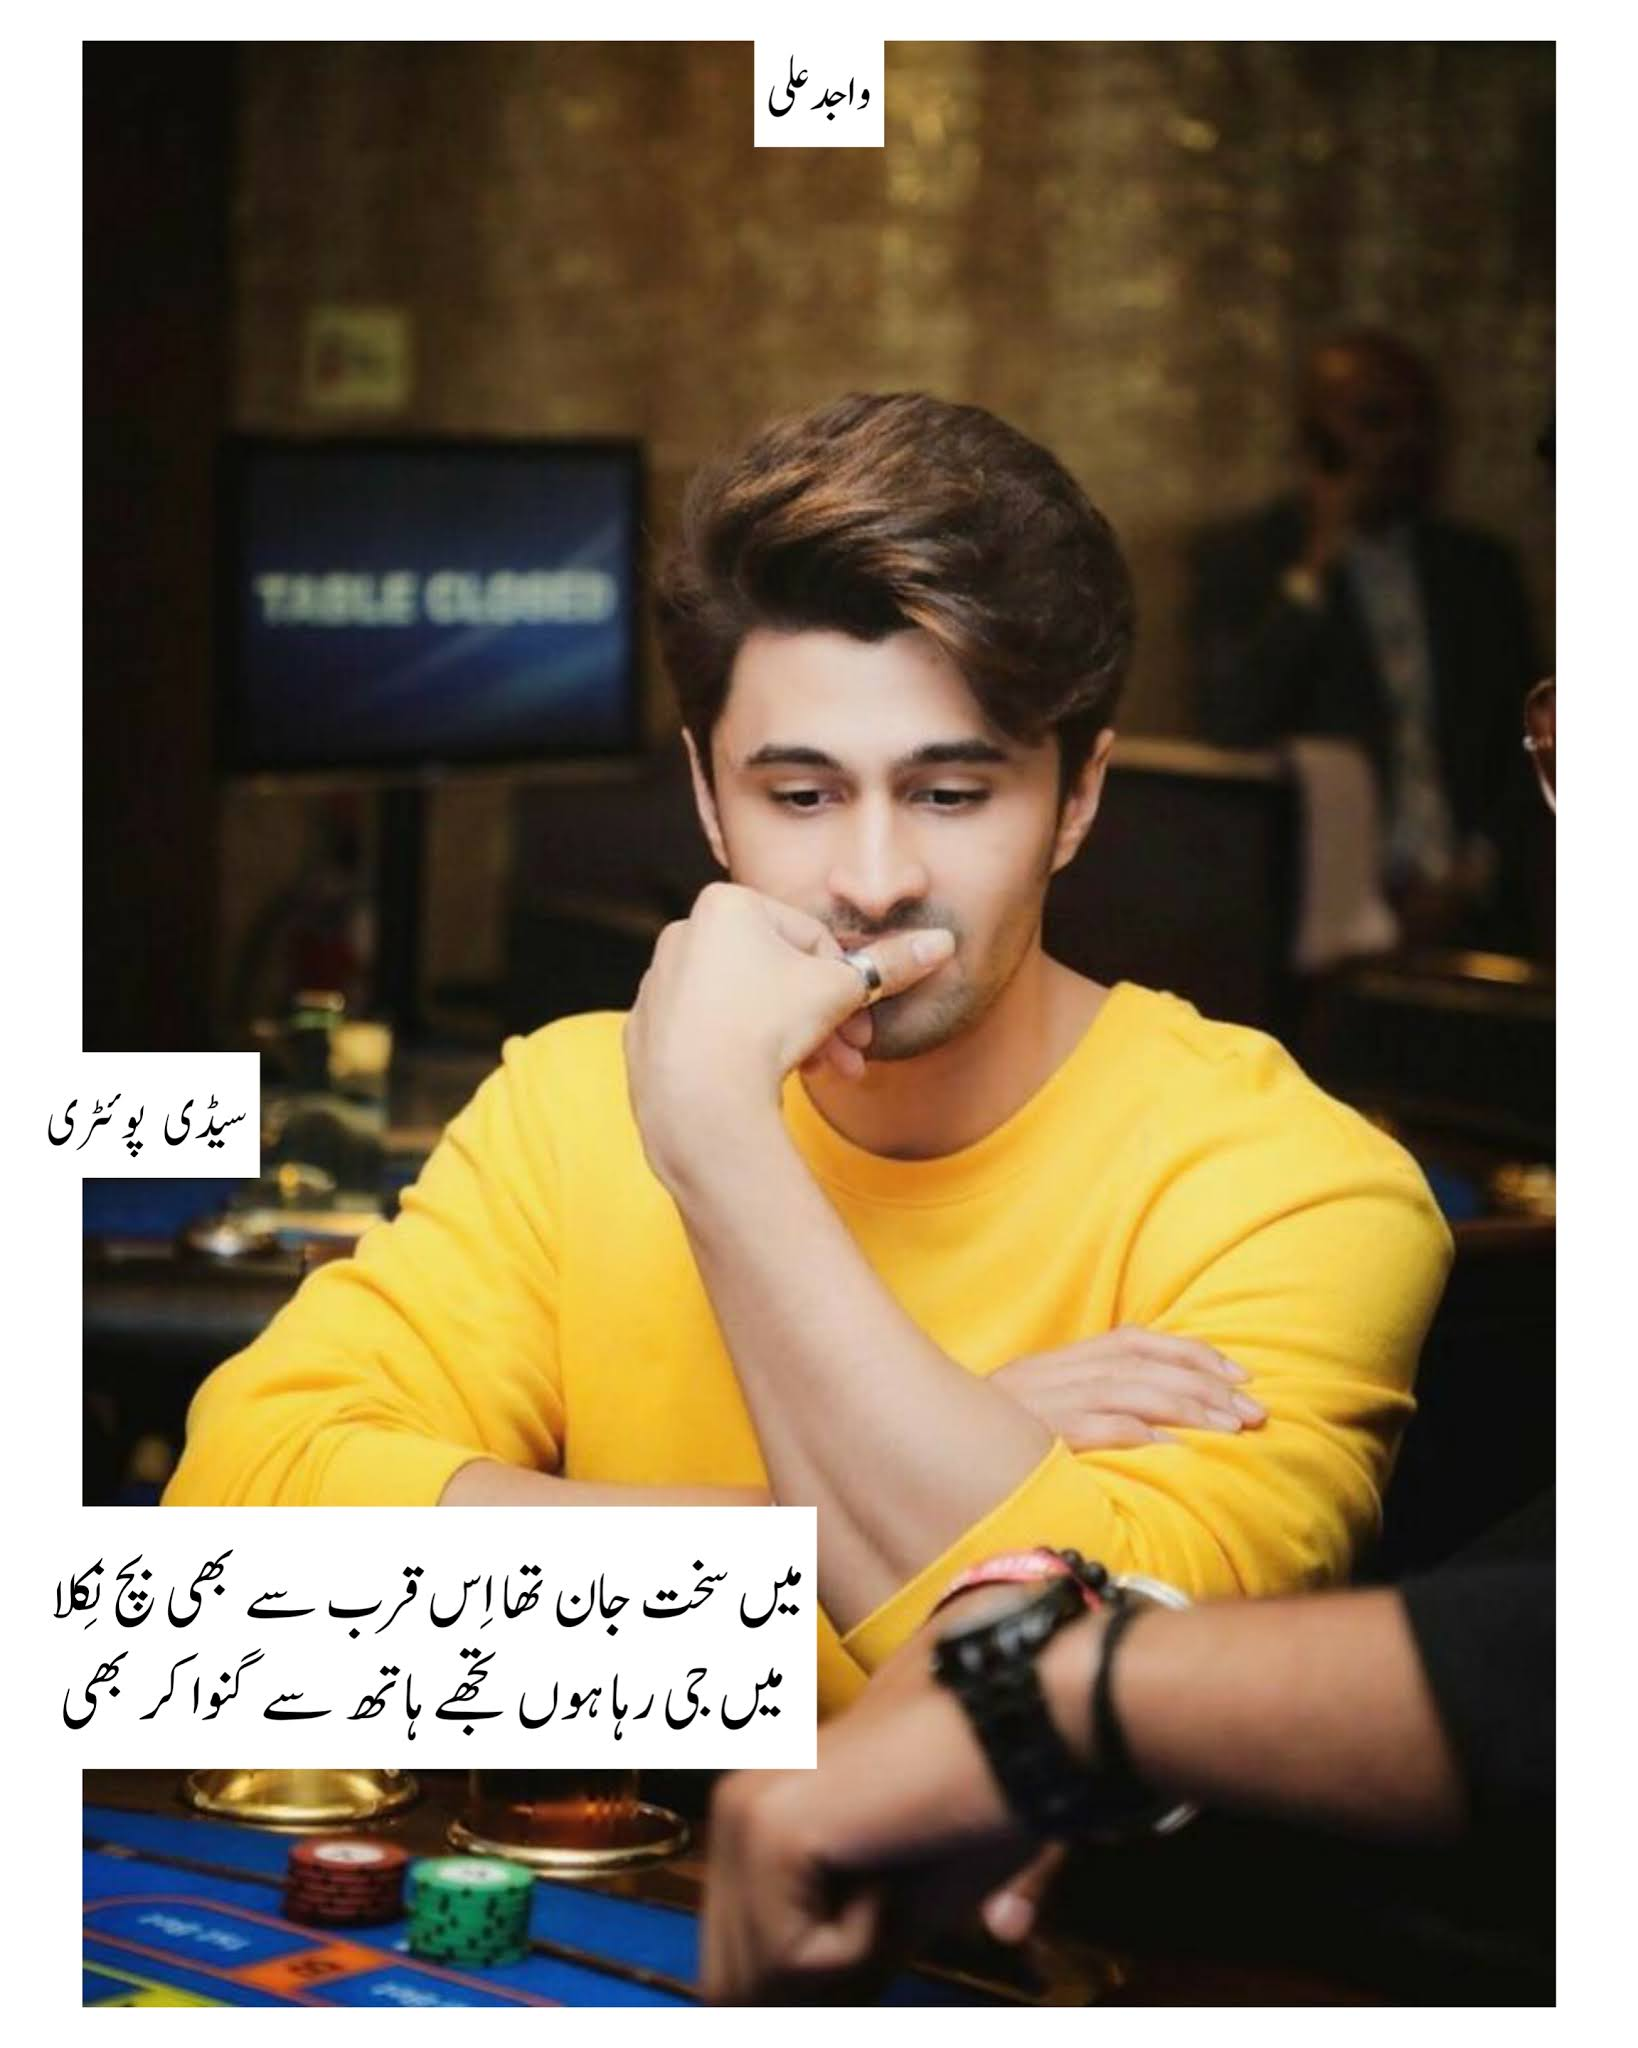 Urdu poetry for boys sad and love